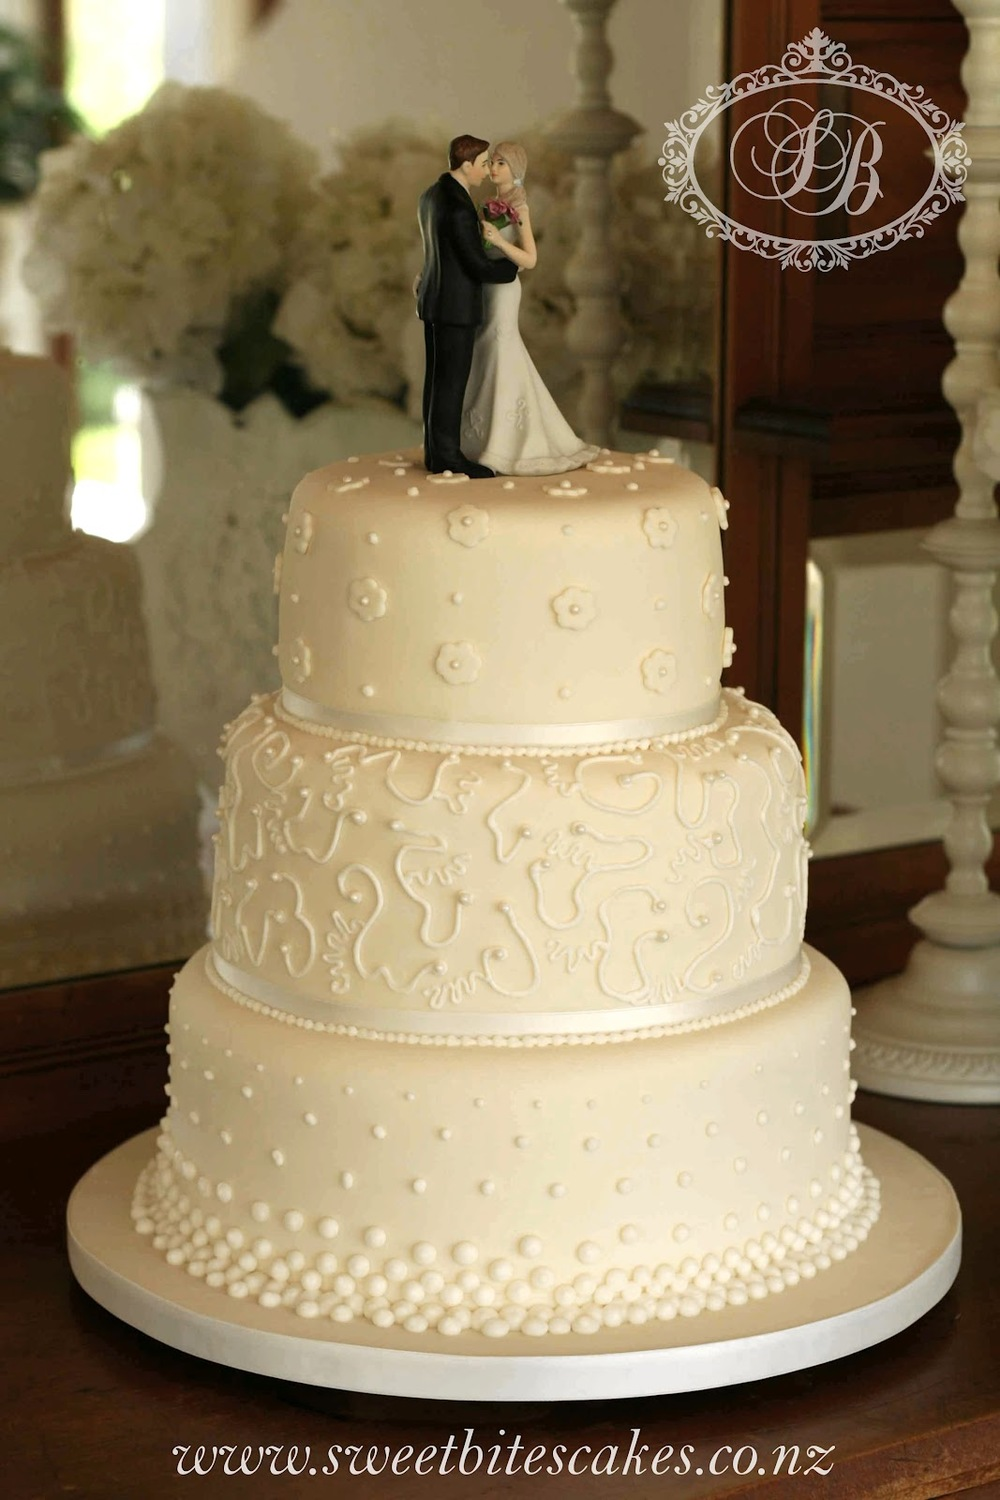 Cakes in the forties were quite ornate and usually features a figurine of the bride and groom on the top. Love Sweetbites take on the forties with this modern adaptation.